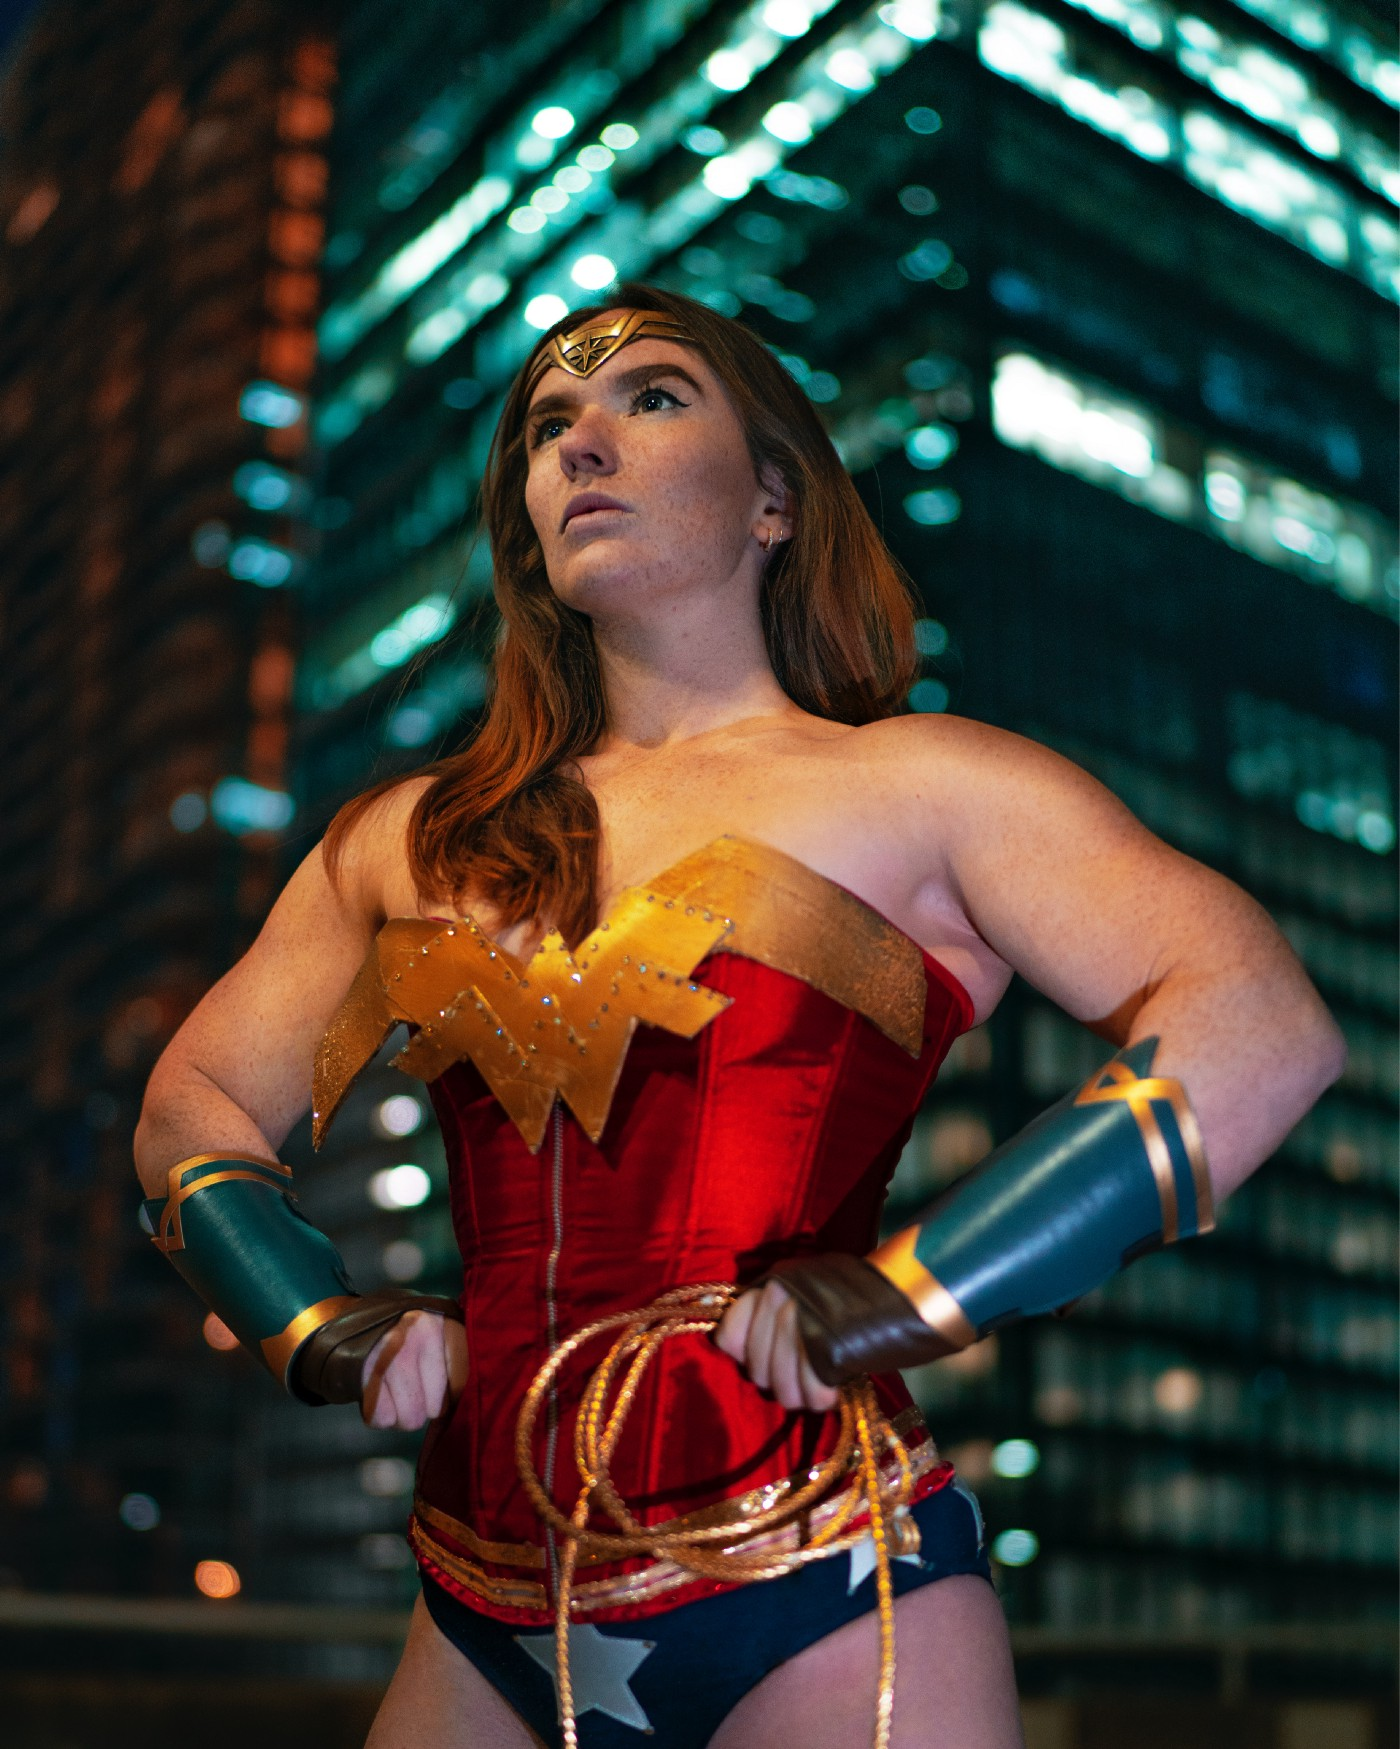 Woman in a red, gold, and blue Wonder Woman outfit with gold-trimmed blue sleeves with a golden head piece.